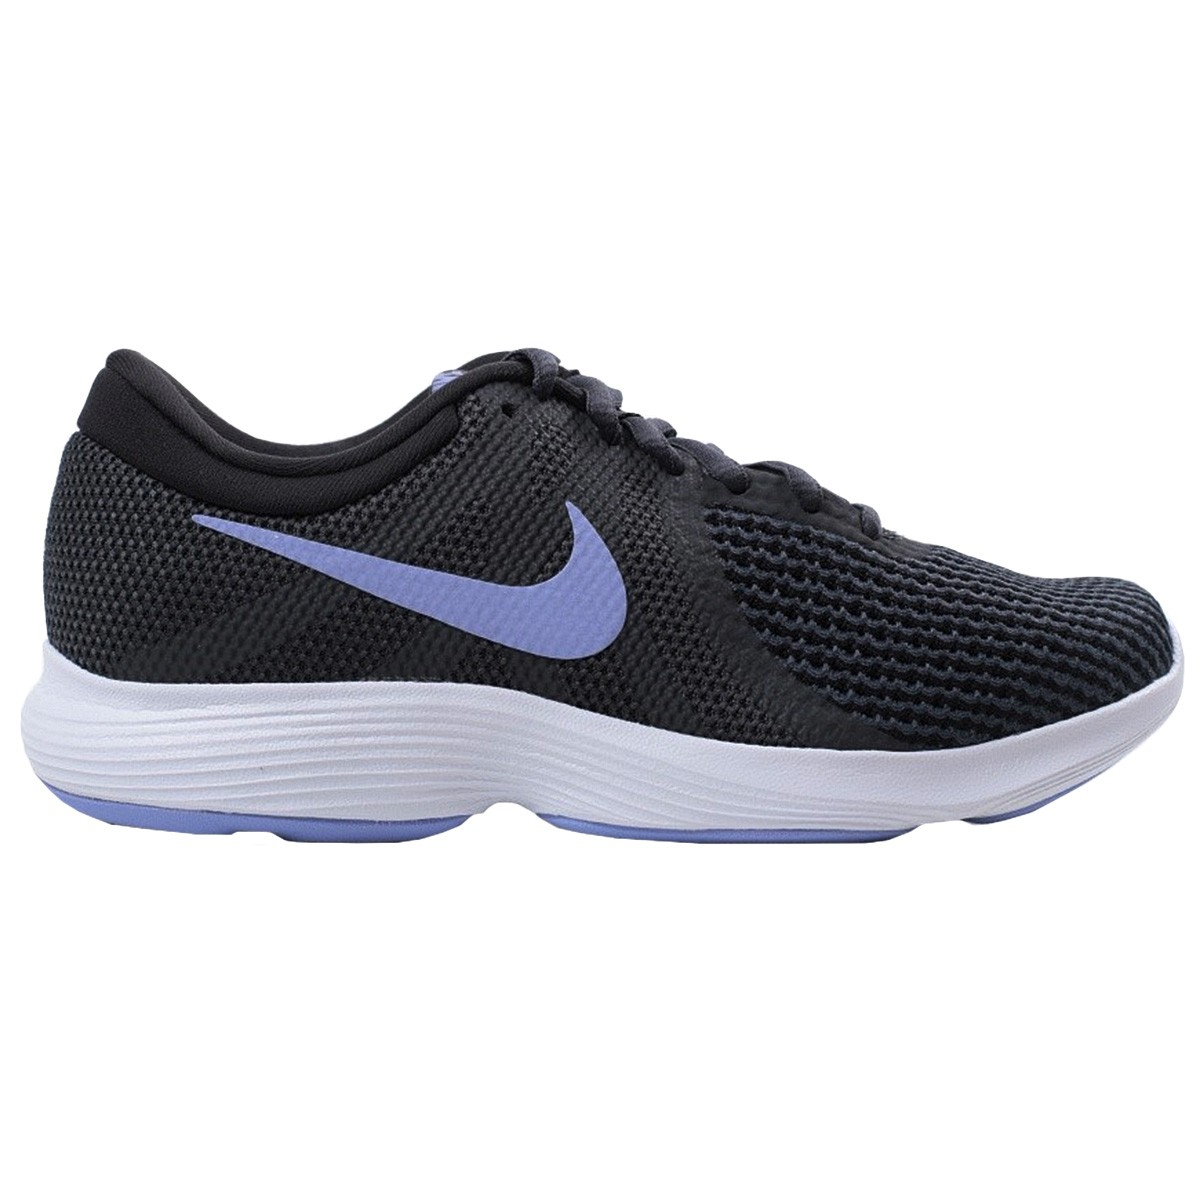 Purple And Black Running Shoes For Woman